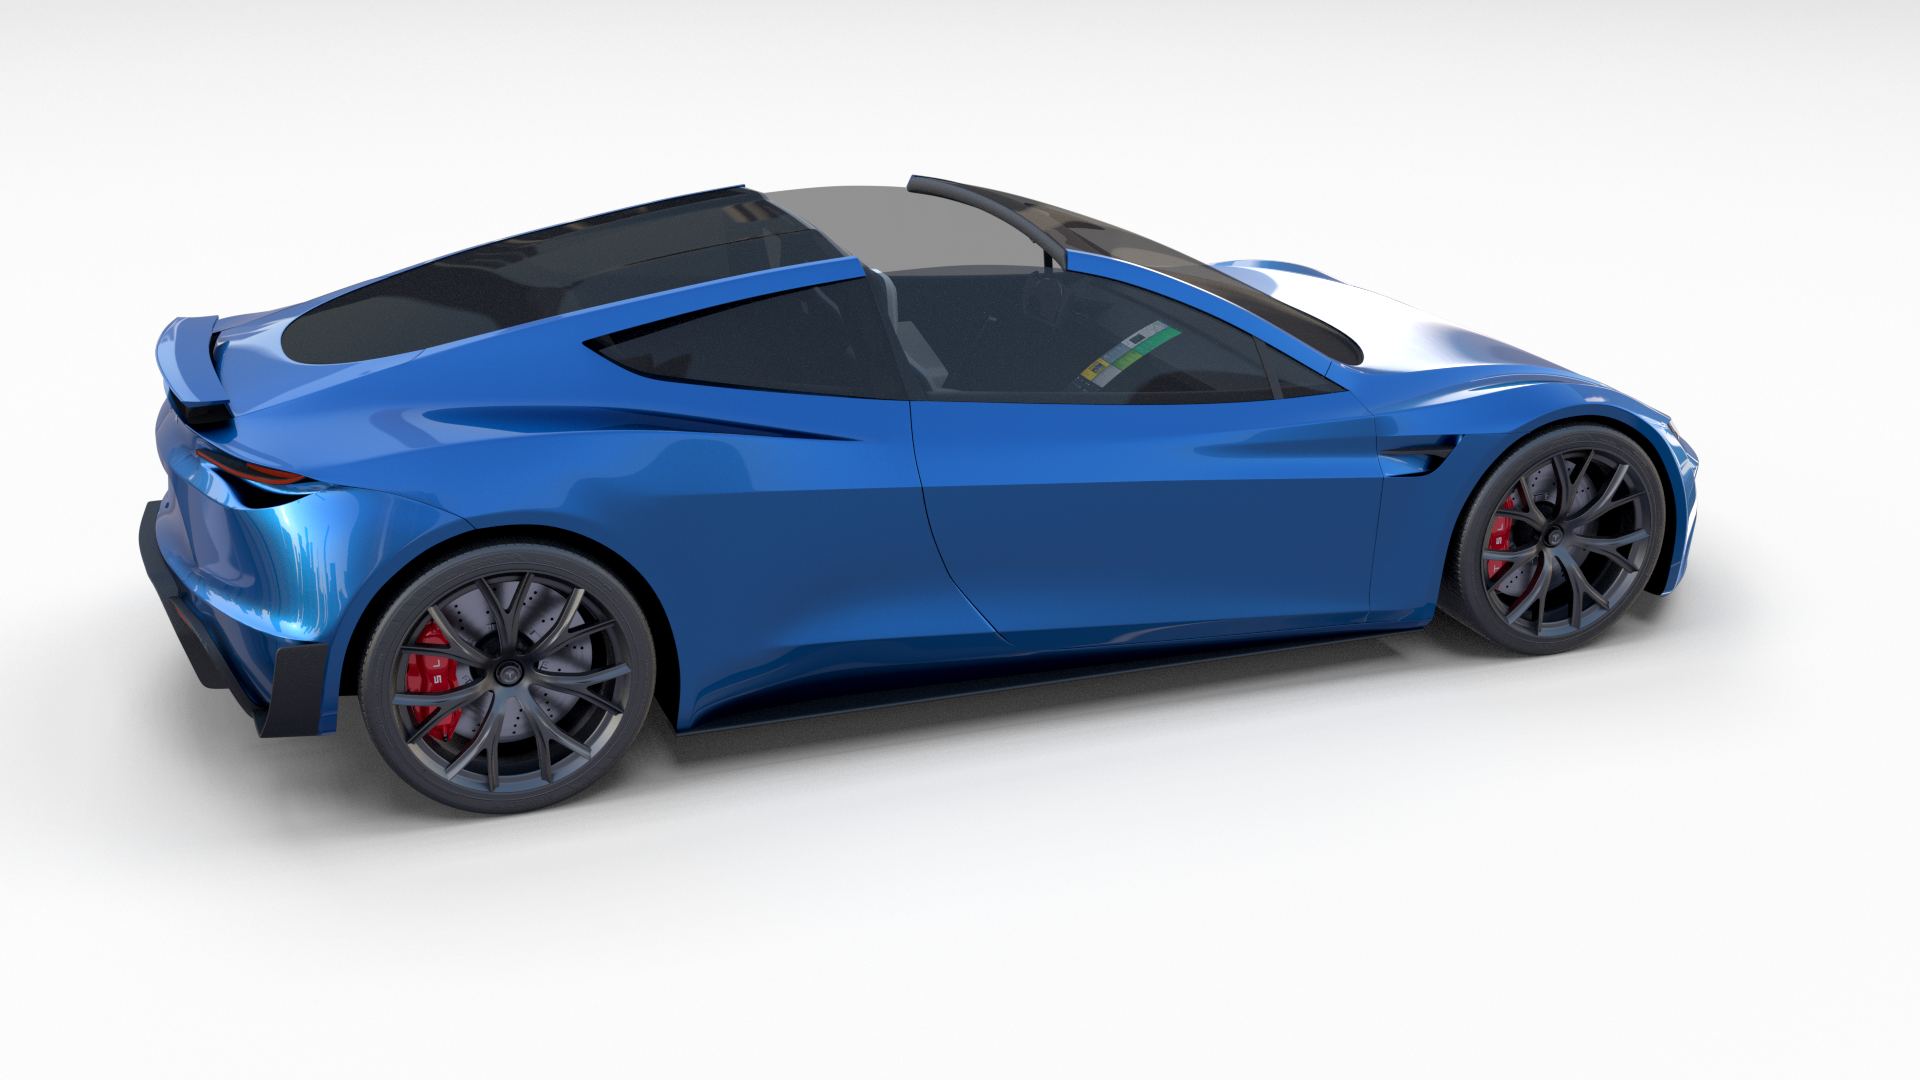 Tesla Roadster 2020 Electric Blue With Interior And Chassis Tesla Roadster Roadsters Ford Gt 2015